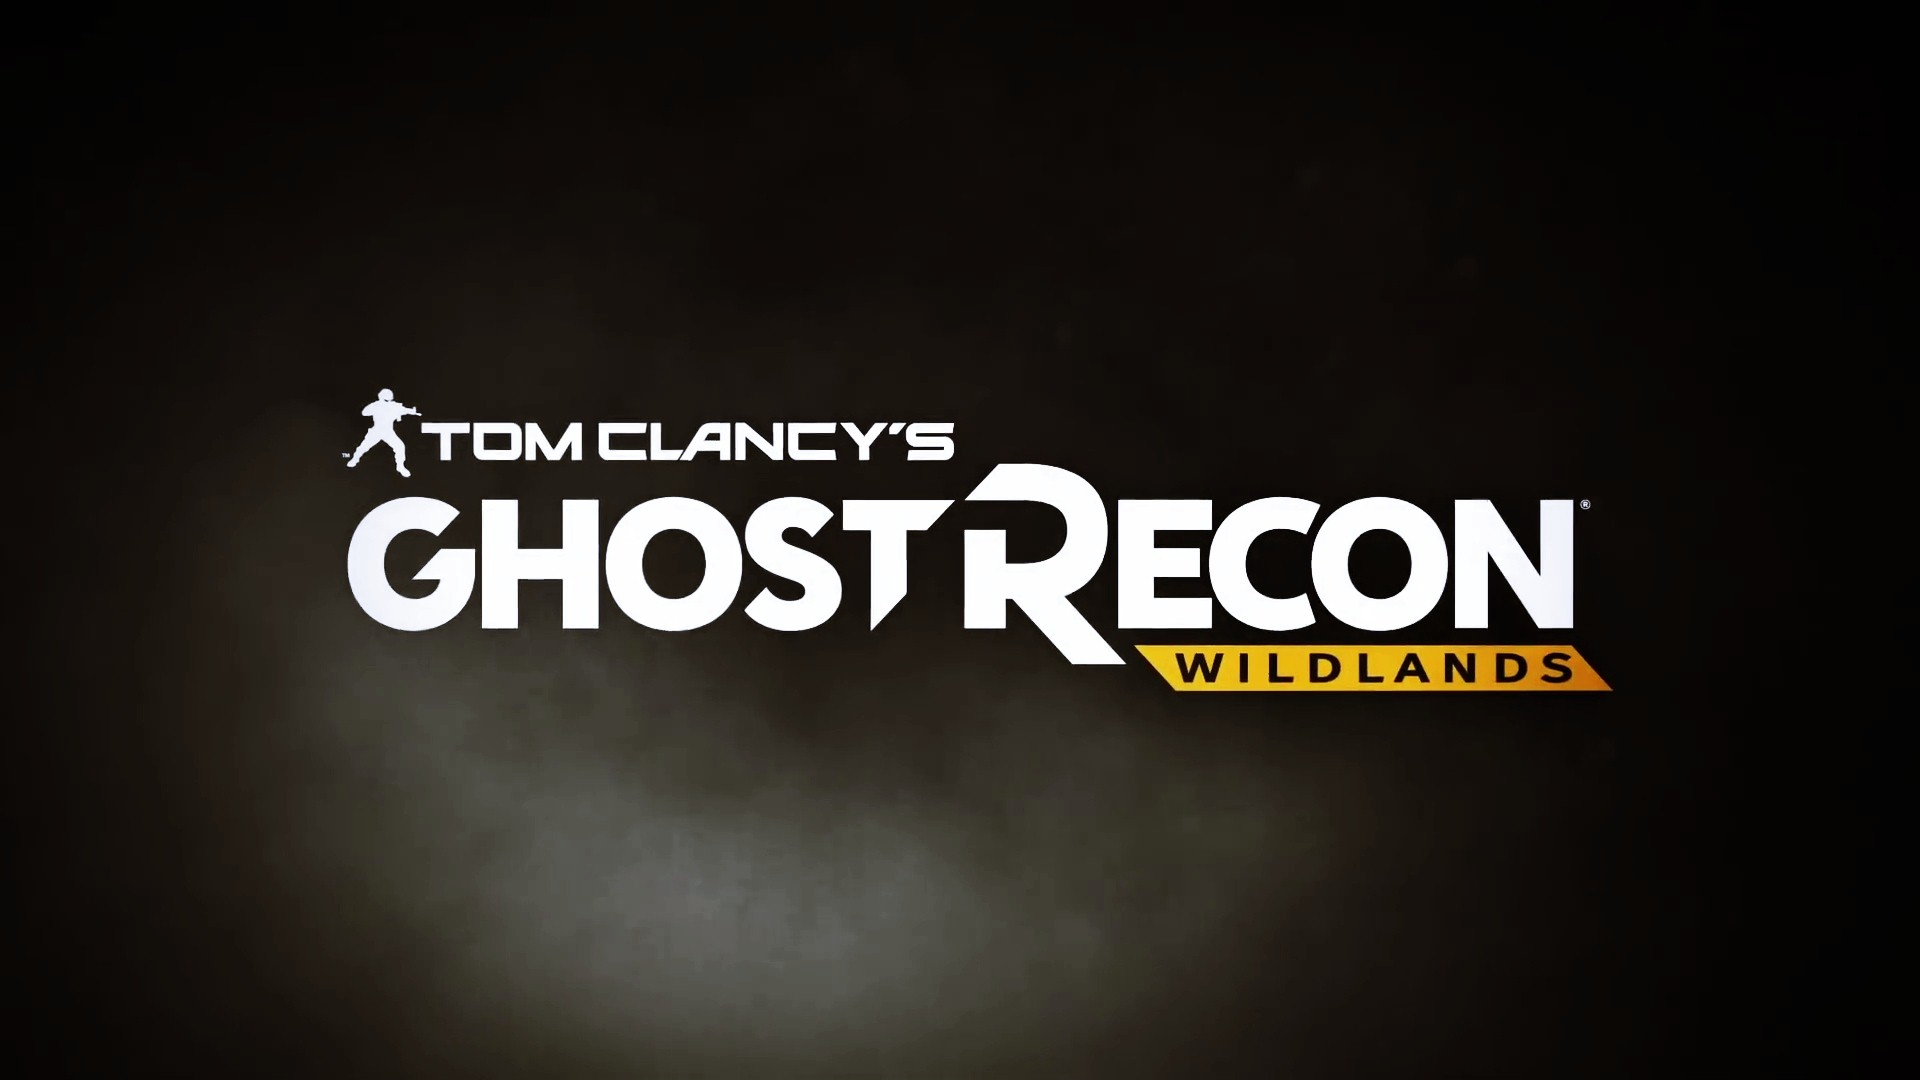 Ghost Recon Wildlands 4k Hd Desktop Wallpaper For Dual: Tom Clancys Ghost Recon Wildlands Logo, HD Games, 4k